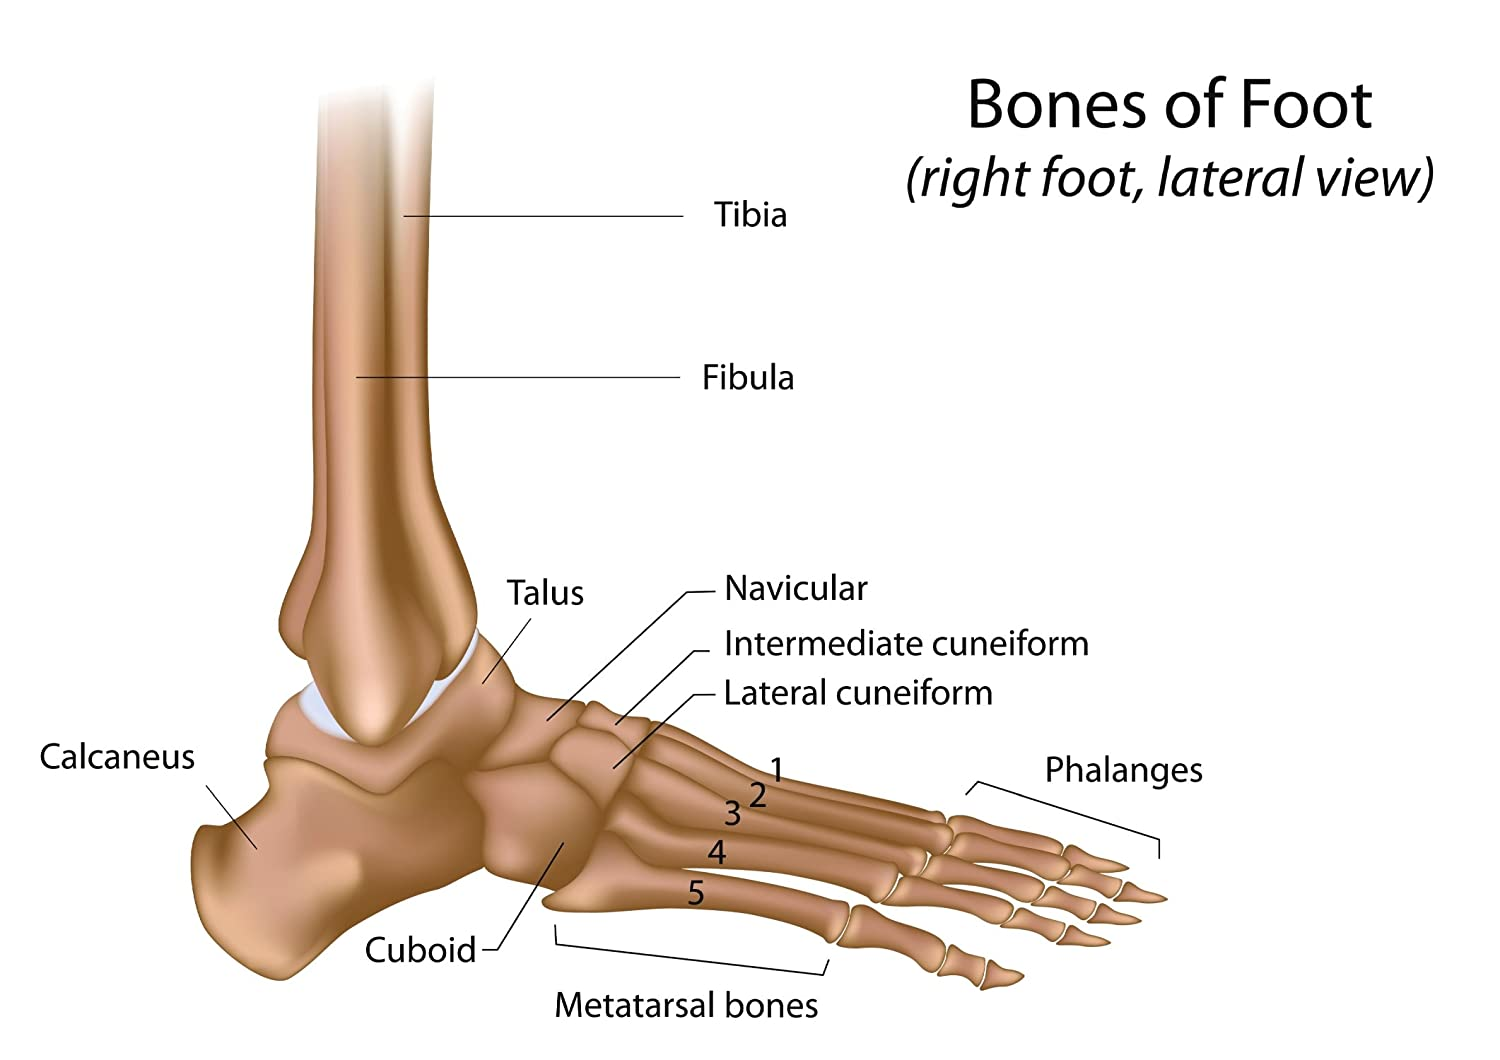 SonicPrint Bones Of Foot Educational Poster. Many, Including Frames.